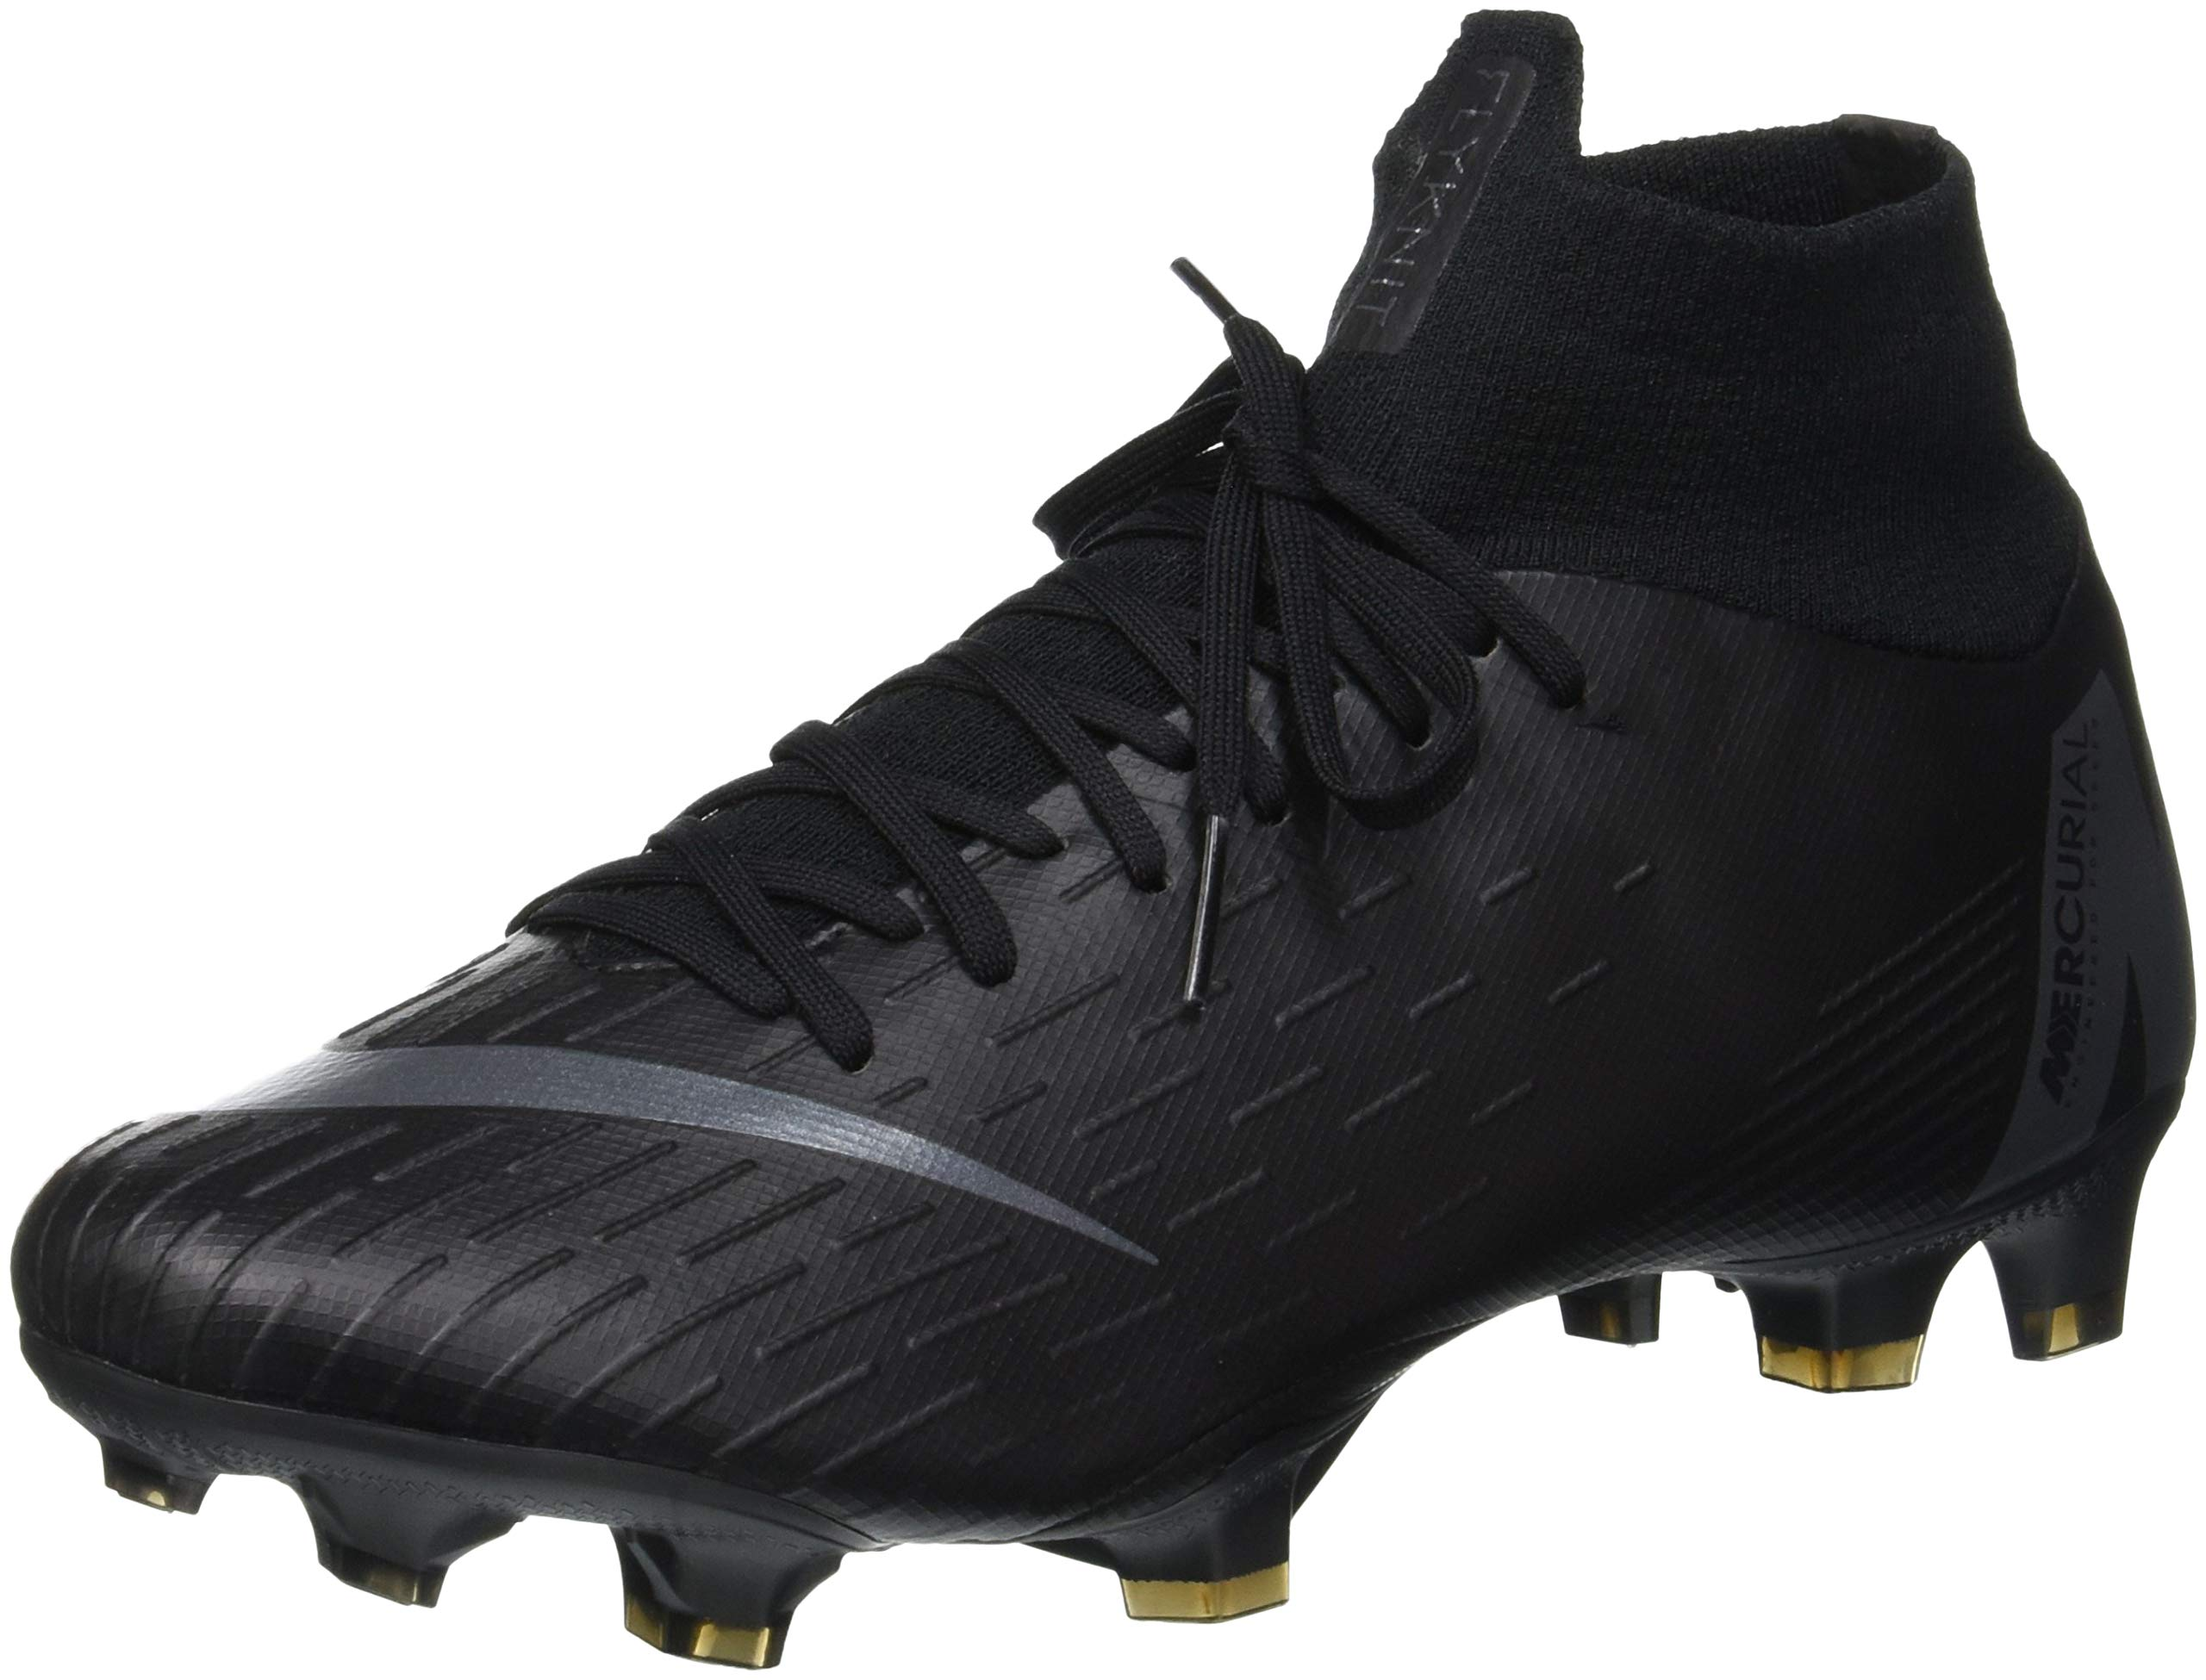 eedf59bc0 Nike Mercurial Superfly 9.5 Top Deals   Lowest Price